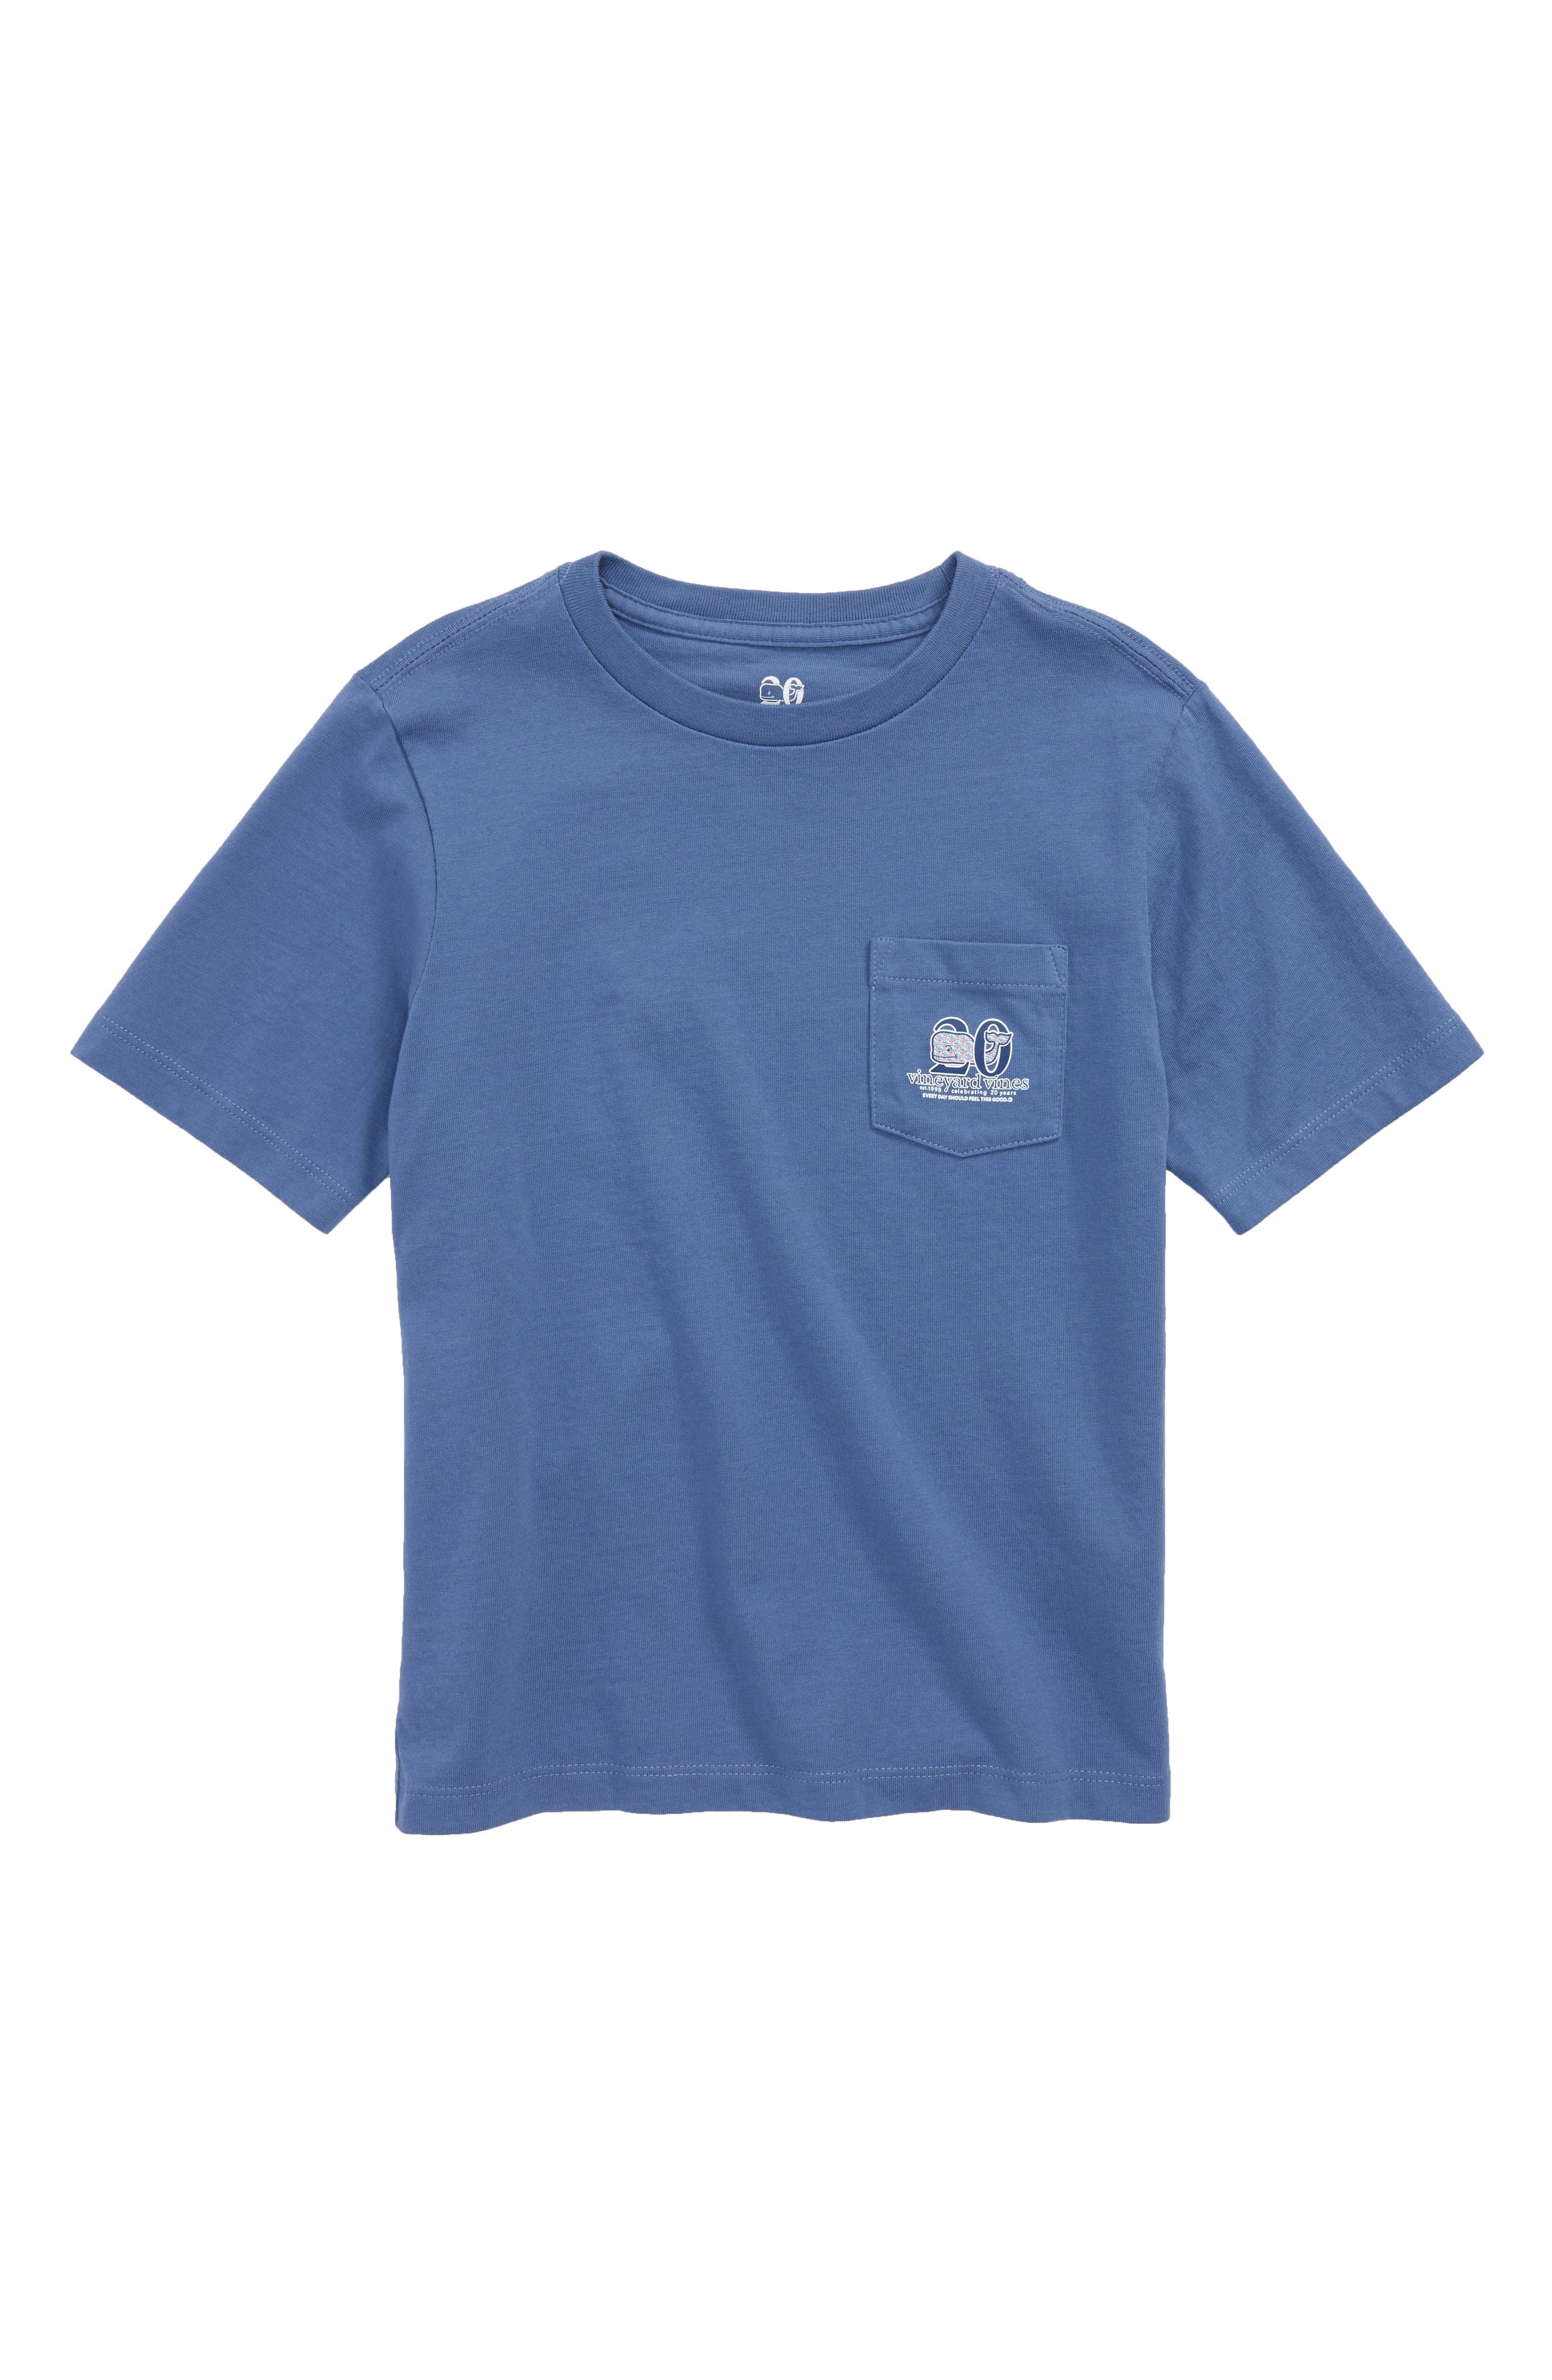 Patchwork Whale Pocket T-Shirt,                         Main,                         color, MOONSHINE